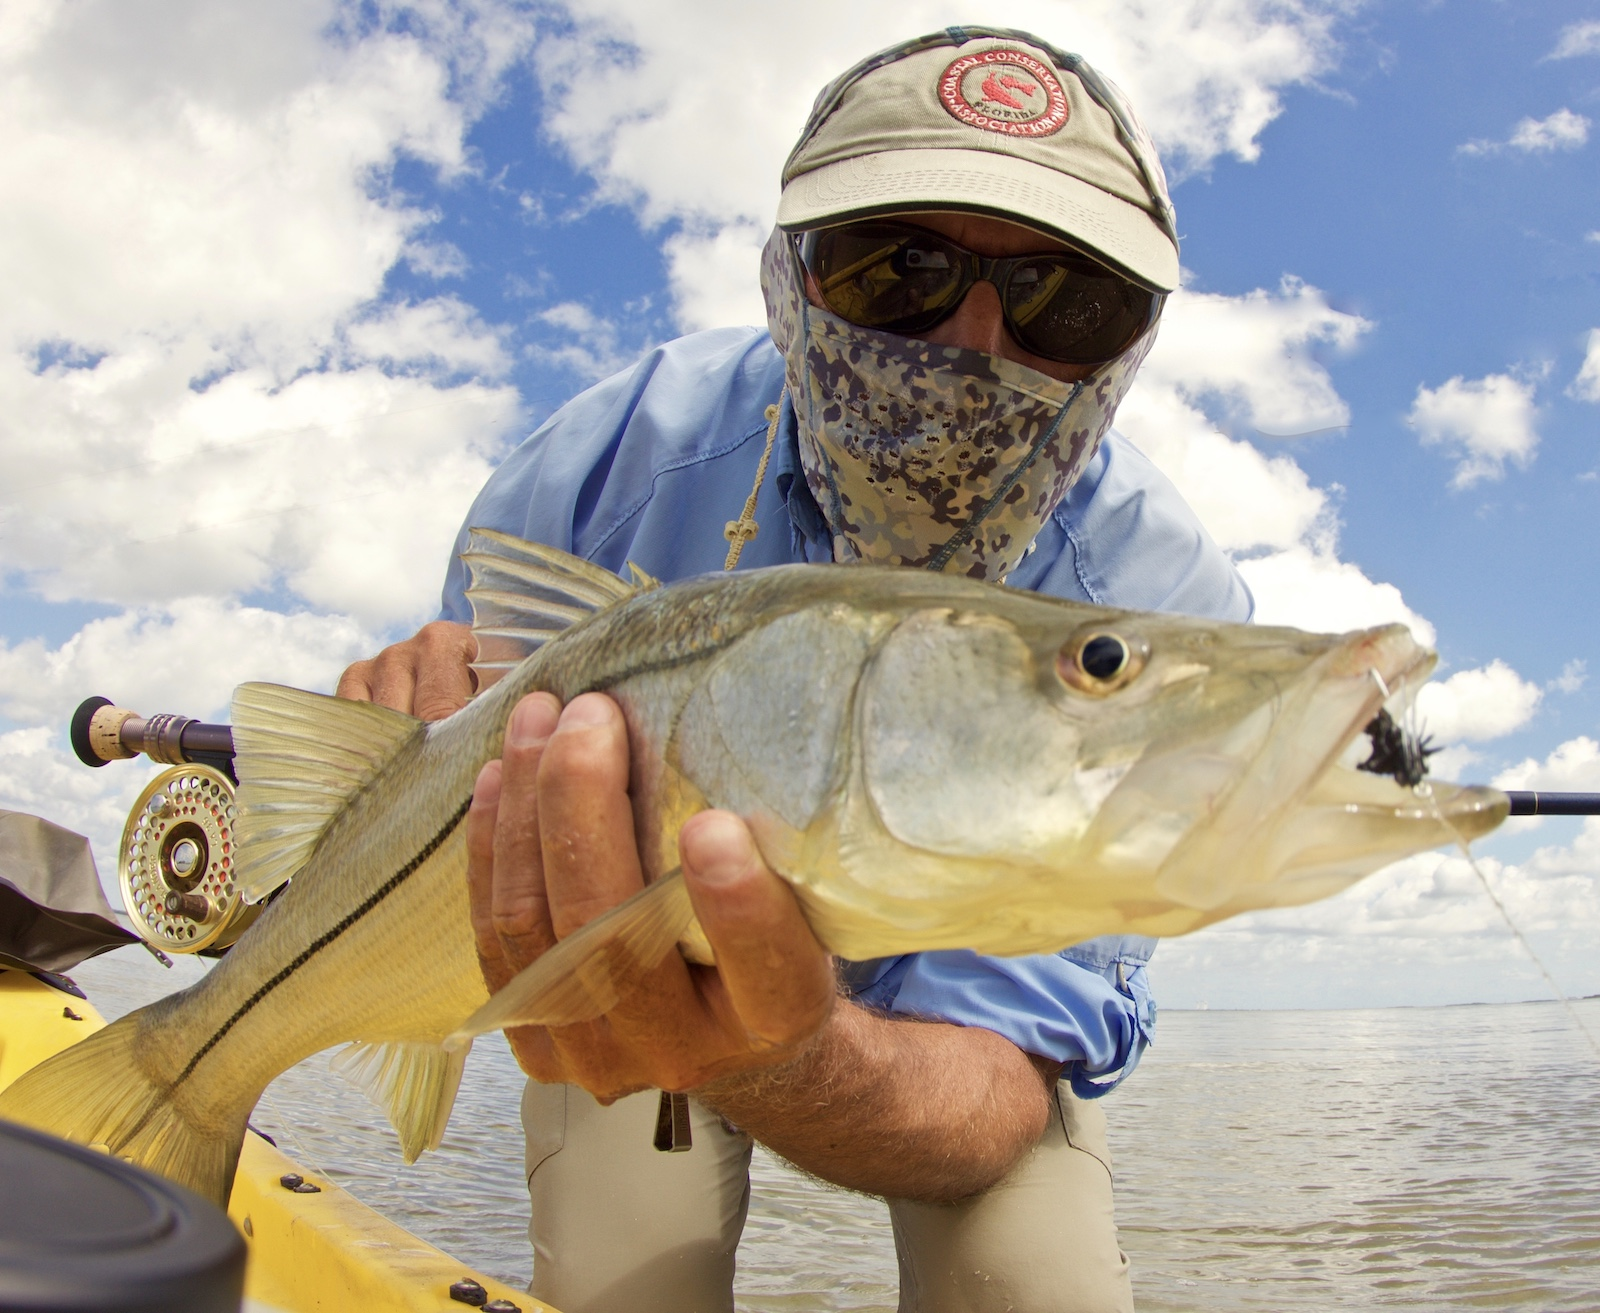 Ep 44: Fly Fishing the Everglades, with John Kumiski